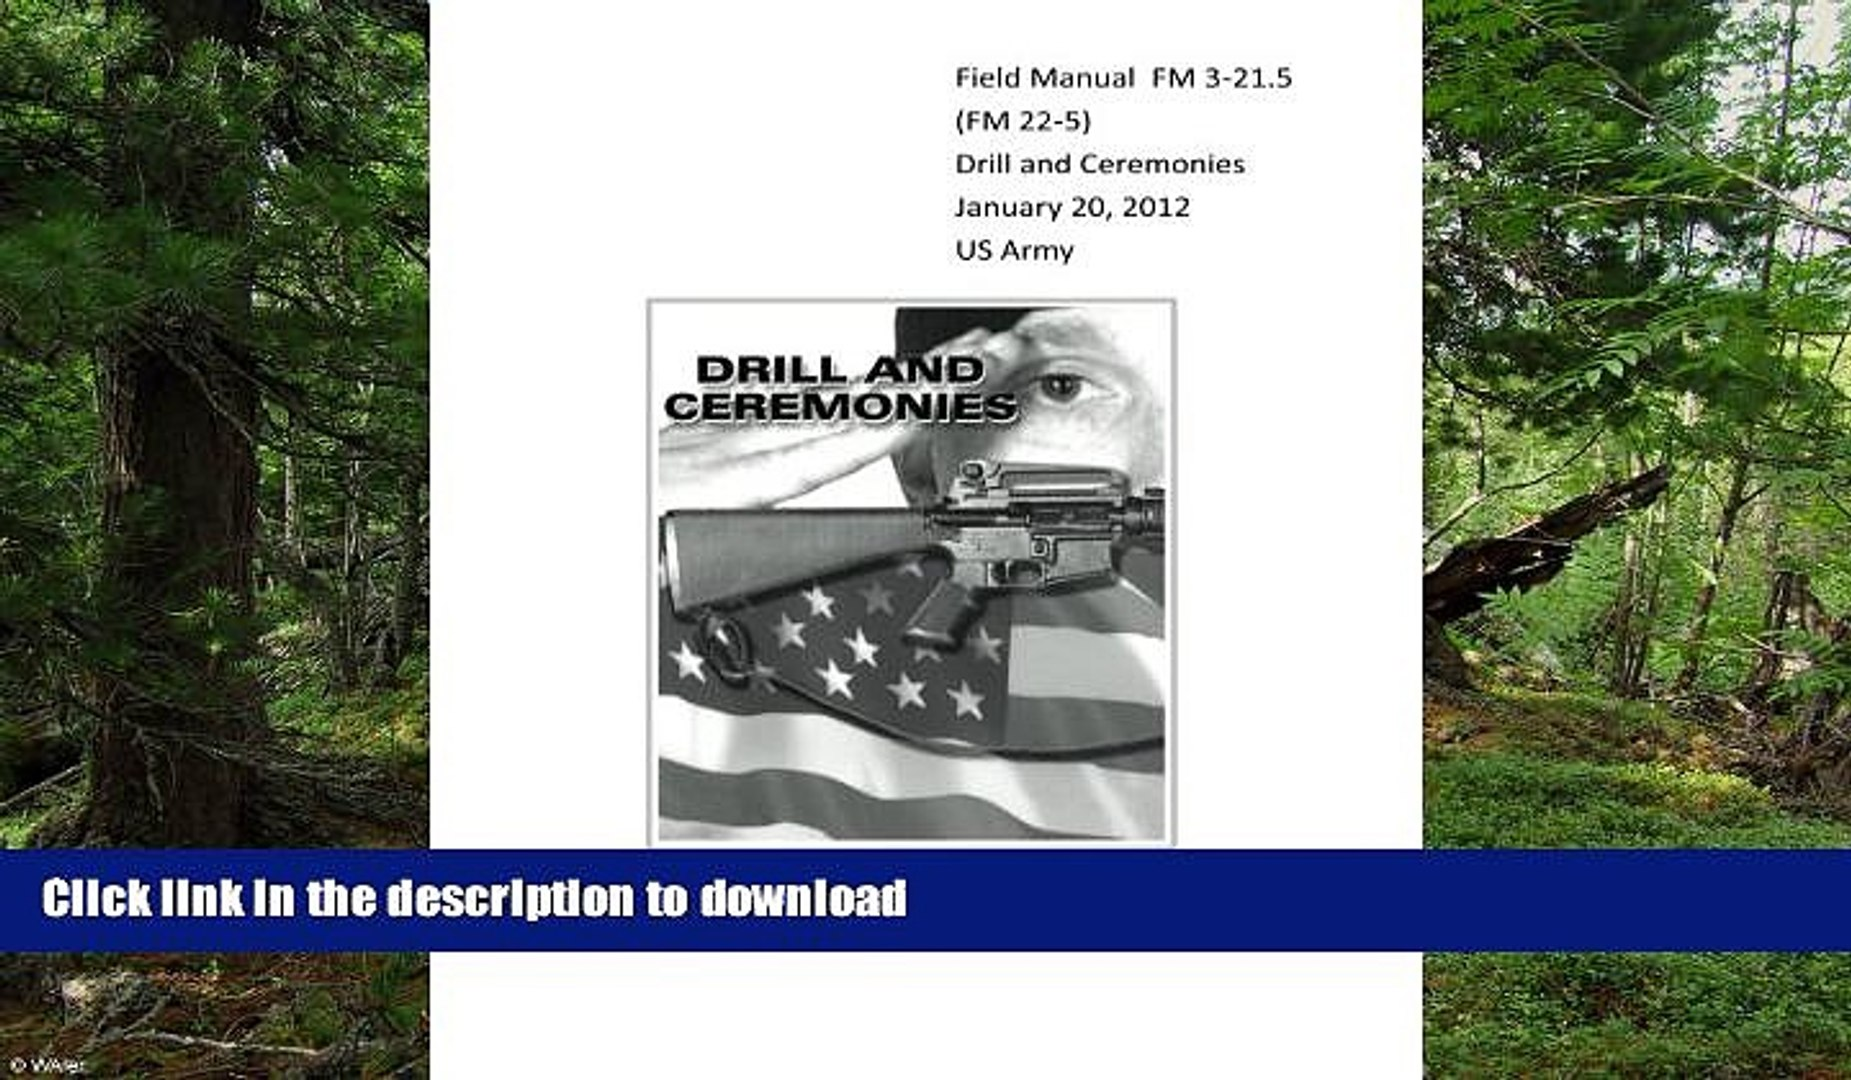 FAVORITE BOOK  Field Manual FM 3-21.5 (FM 22-5) Drill and Ceremonies January 20, 2012 US Army